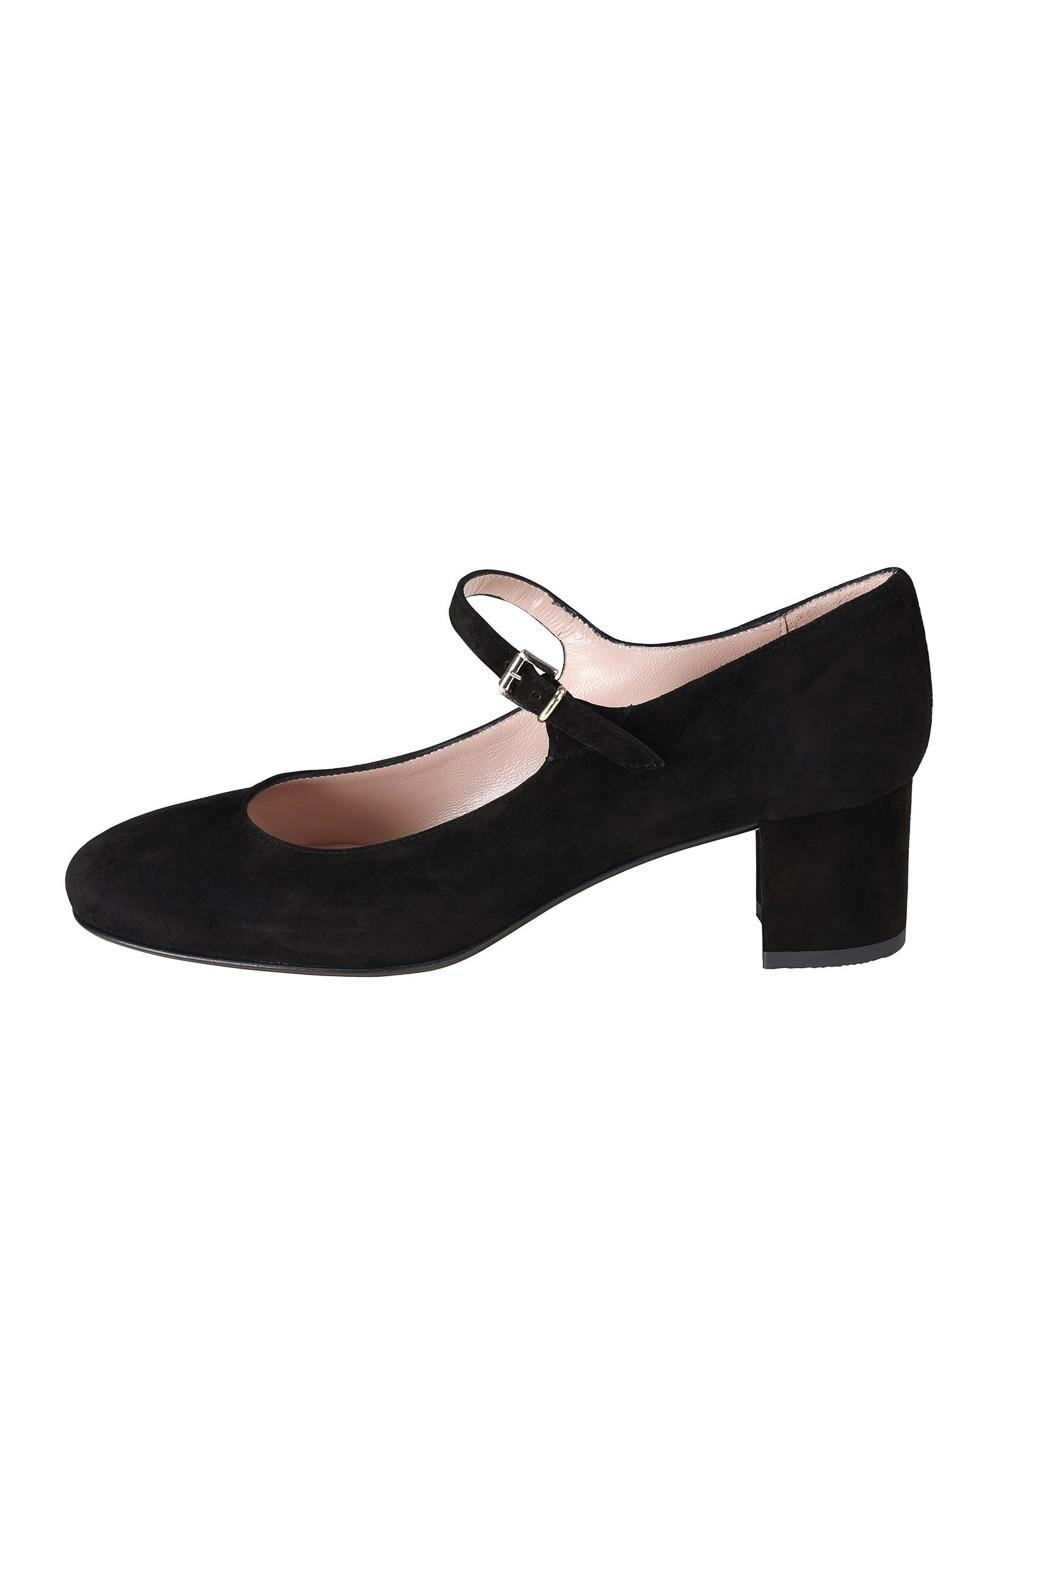 Pascucci Black Suede Mary-Janes - Main Image